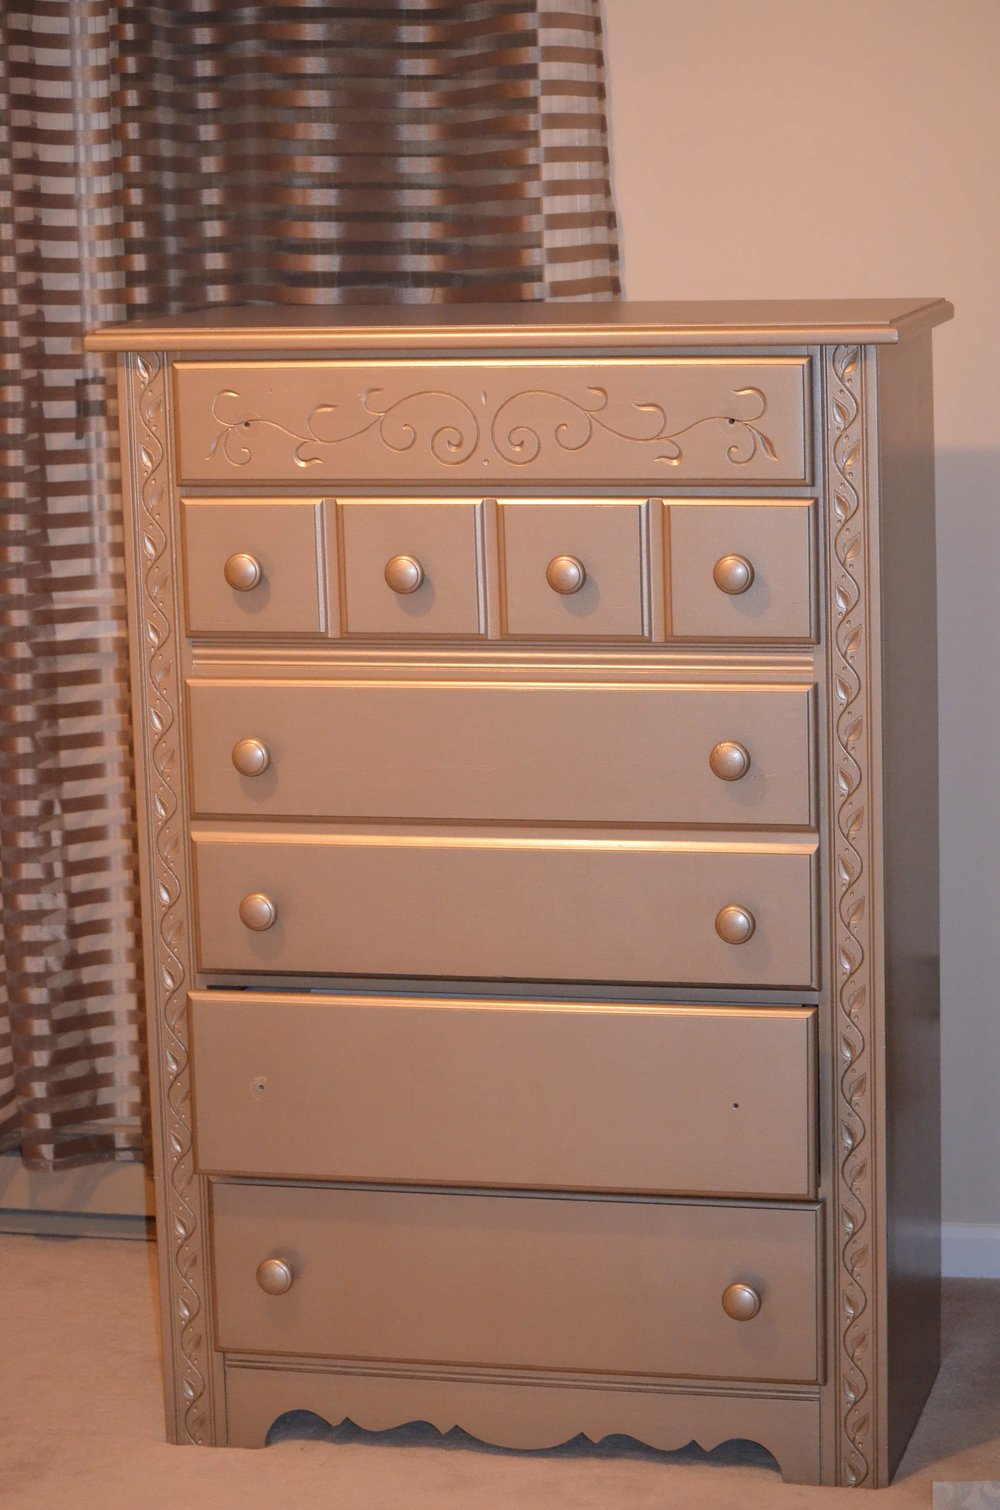 Merveilleux Furniture Painting Company Upper Valley New Hampshire Vermont.